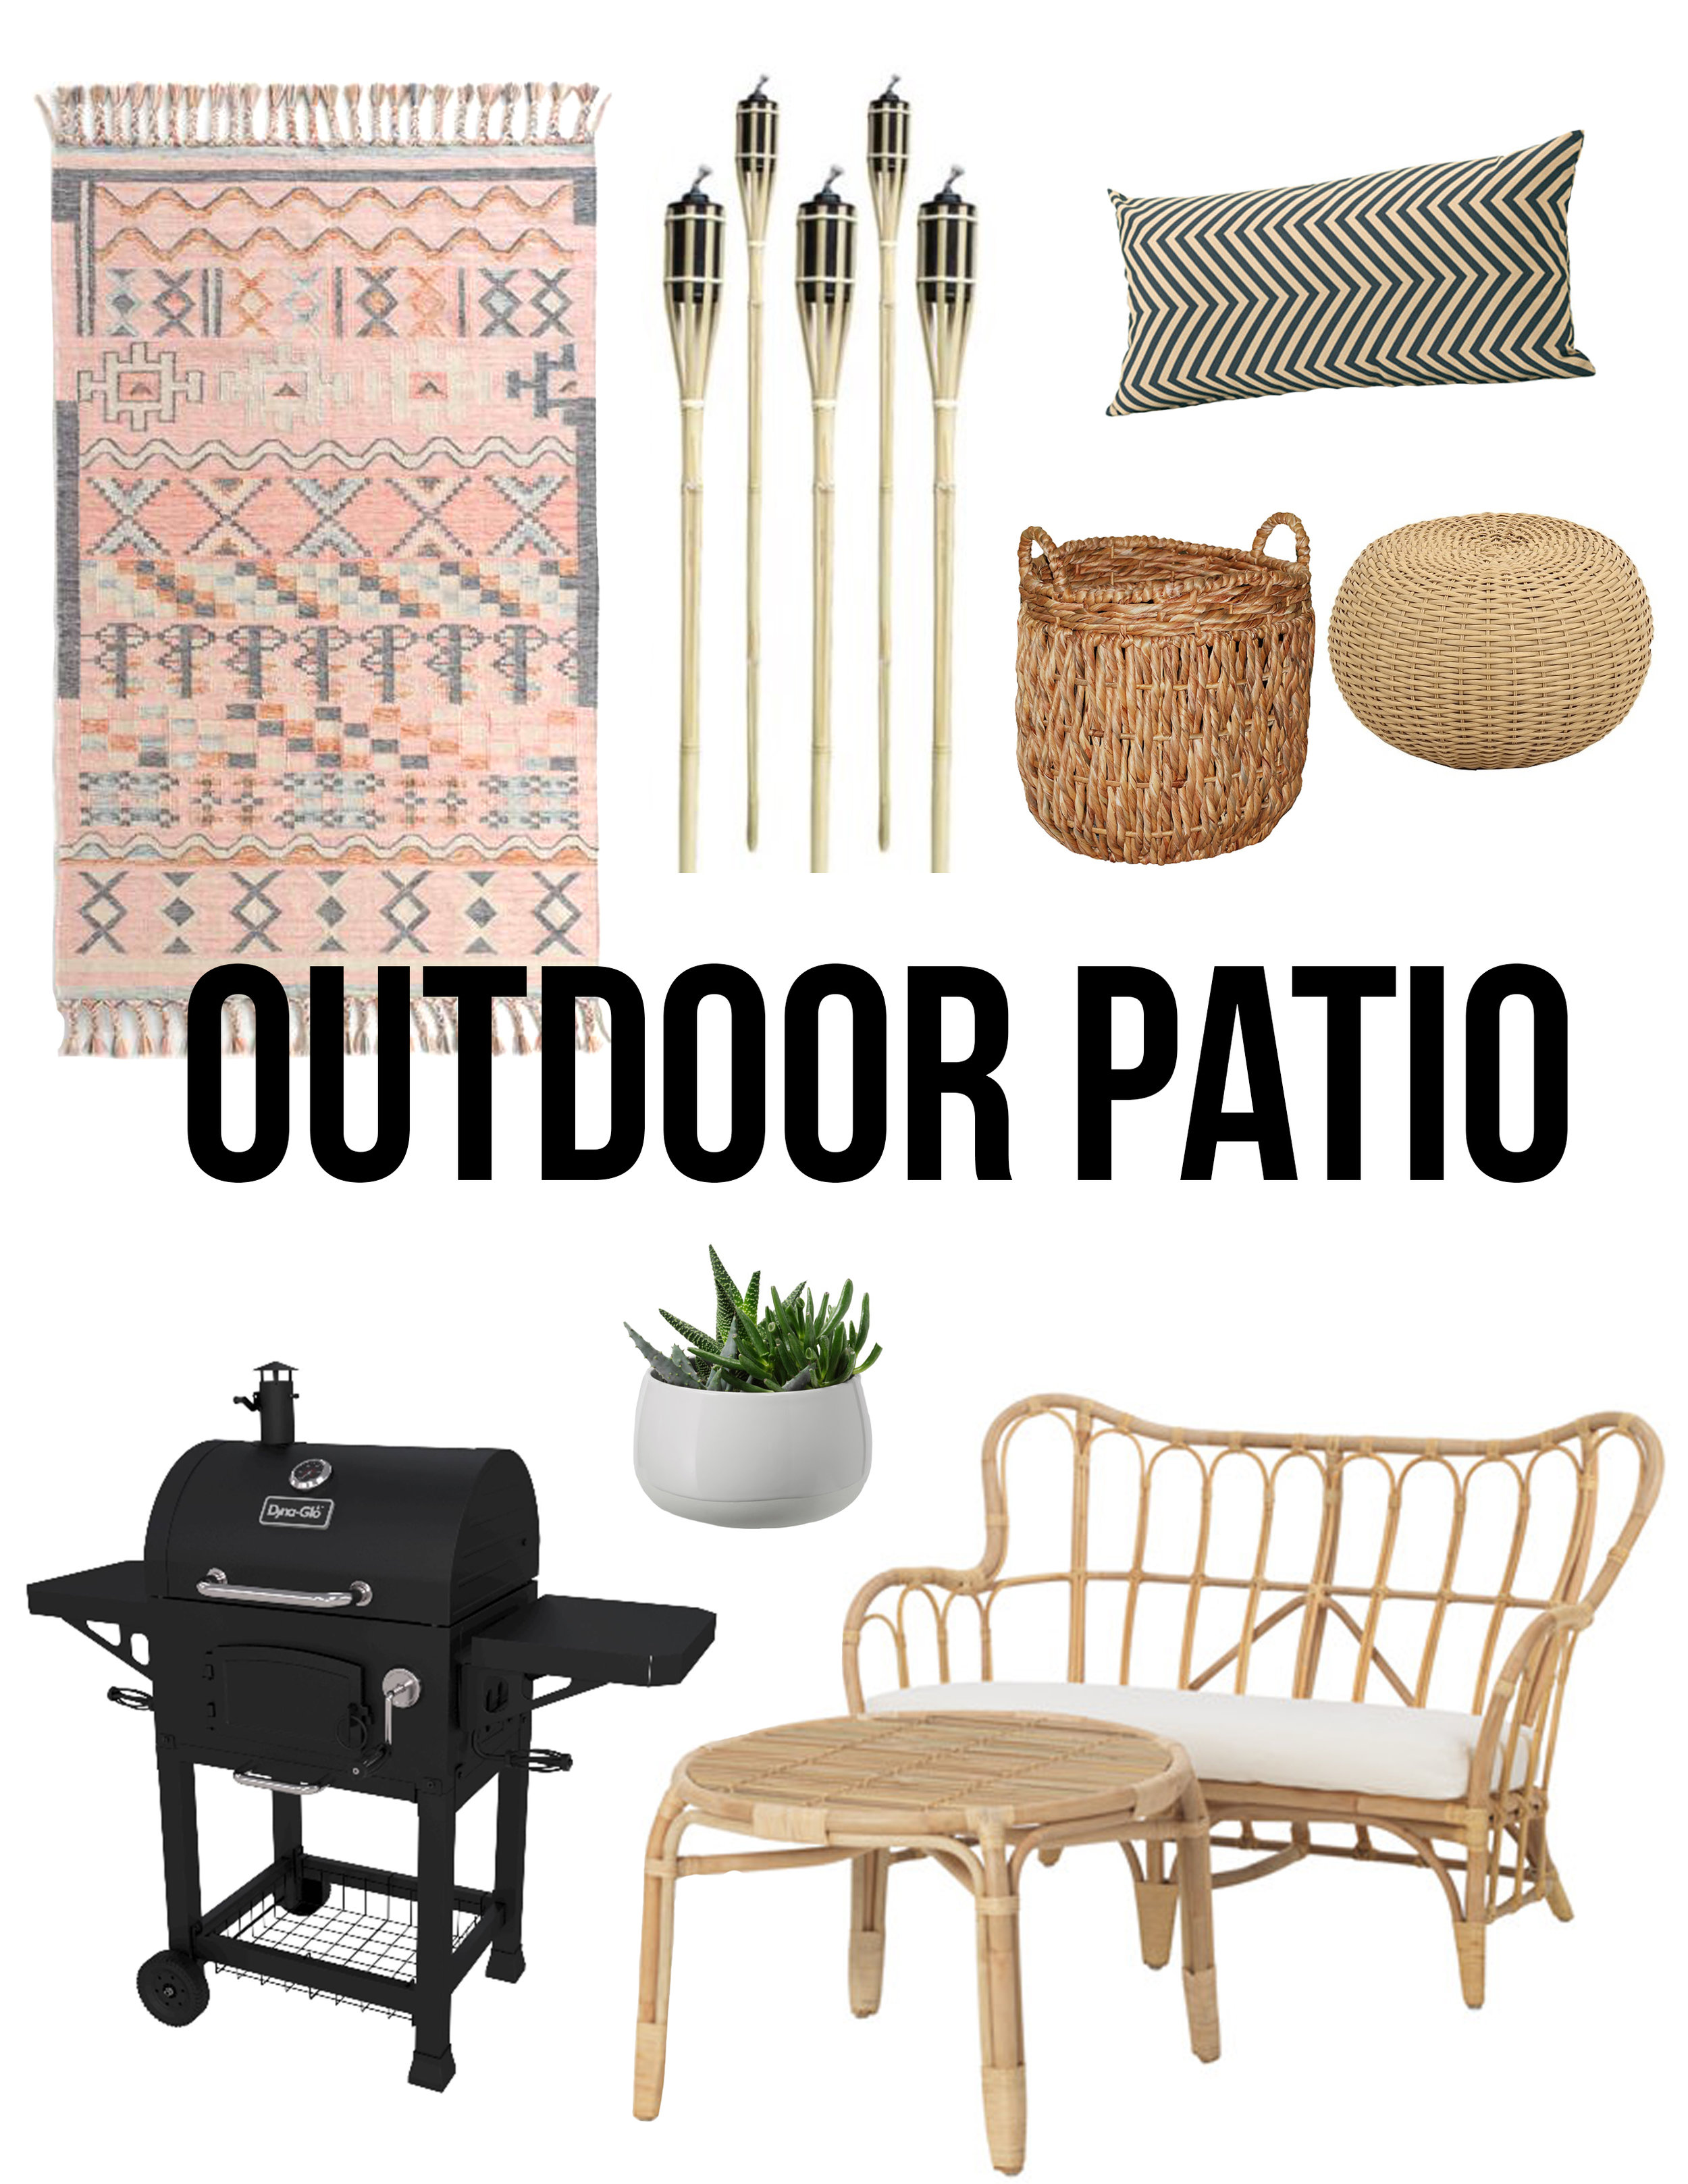 LOWE'S-  Tiki Torches   IKEA- Succulent  •  Love seat and Table  •  Pillow   World Market- Rug   Target-  Wicker Pouf  •  Wicker Basket  •  Grill